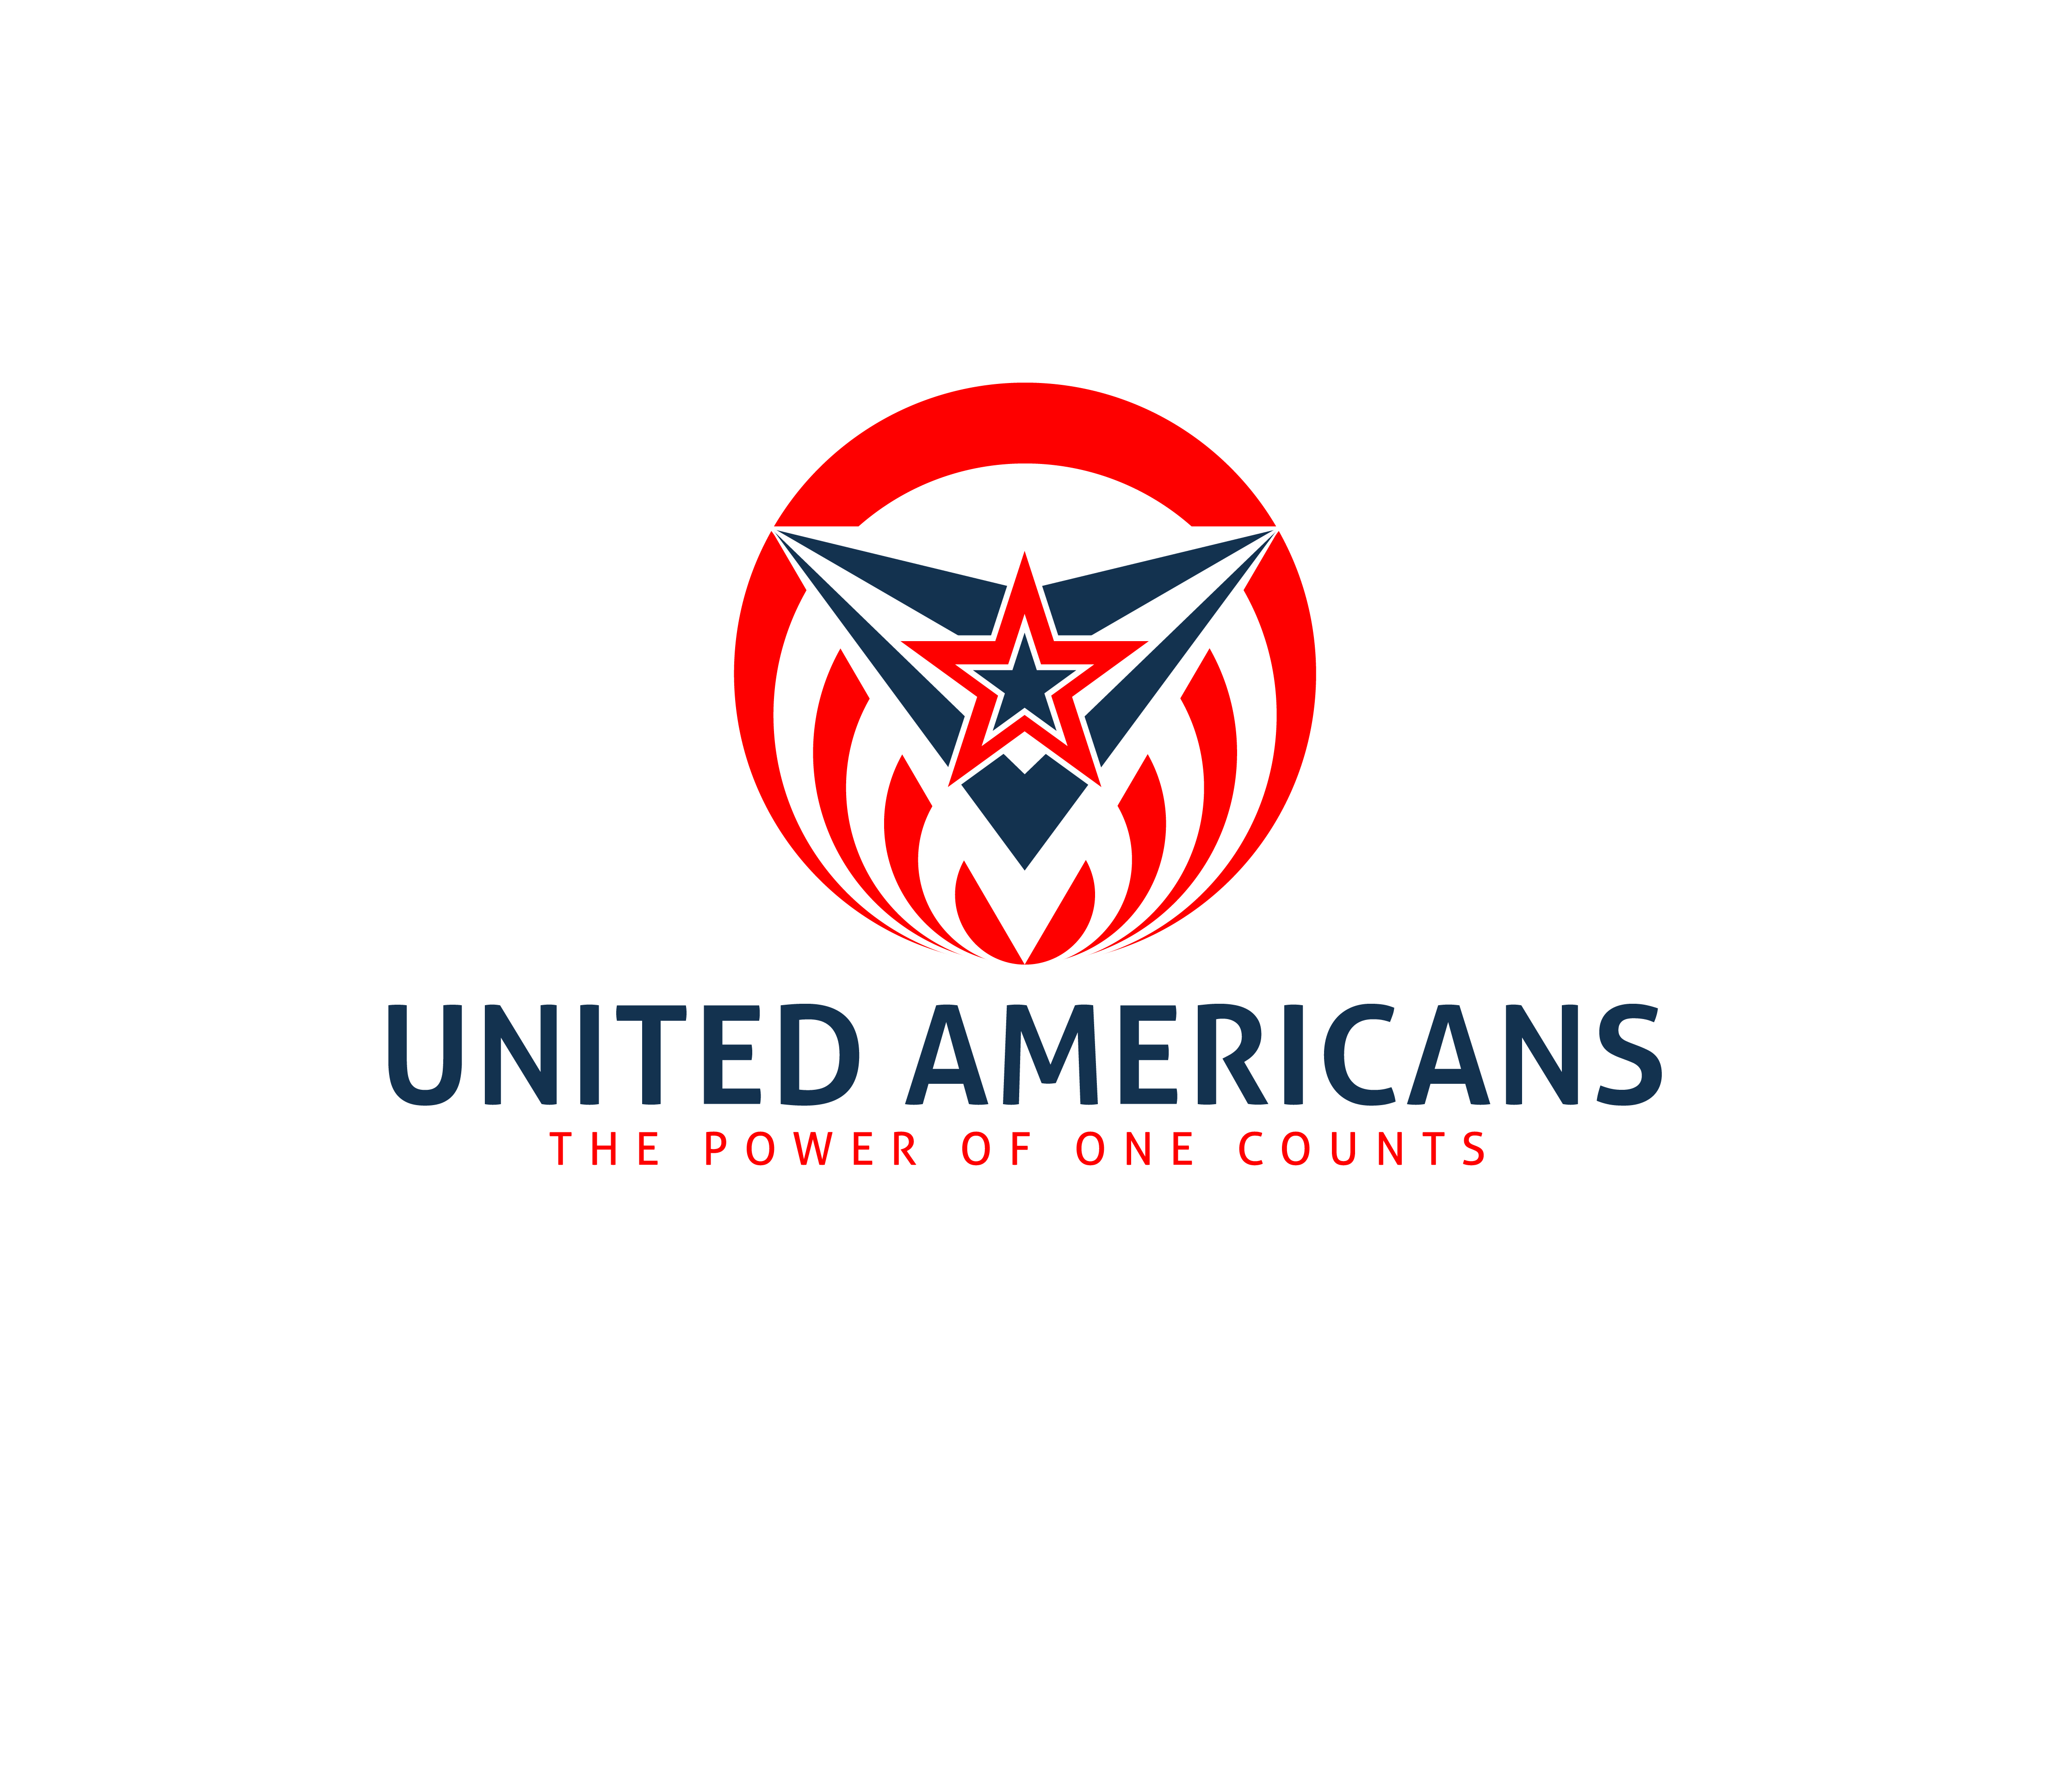 Logo Design by 3draw - Entry No. 117 in the Logo Design Contest Creative Logo Design for United Americans.